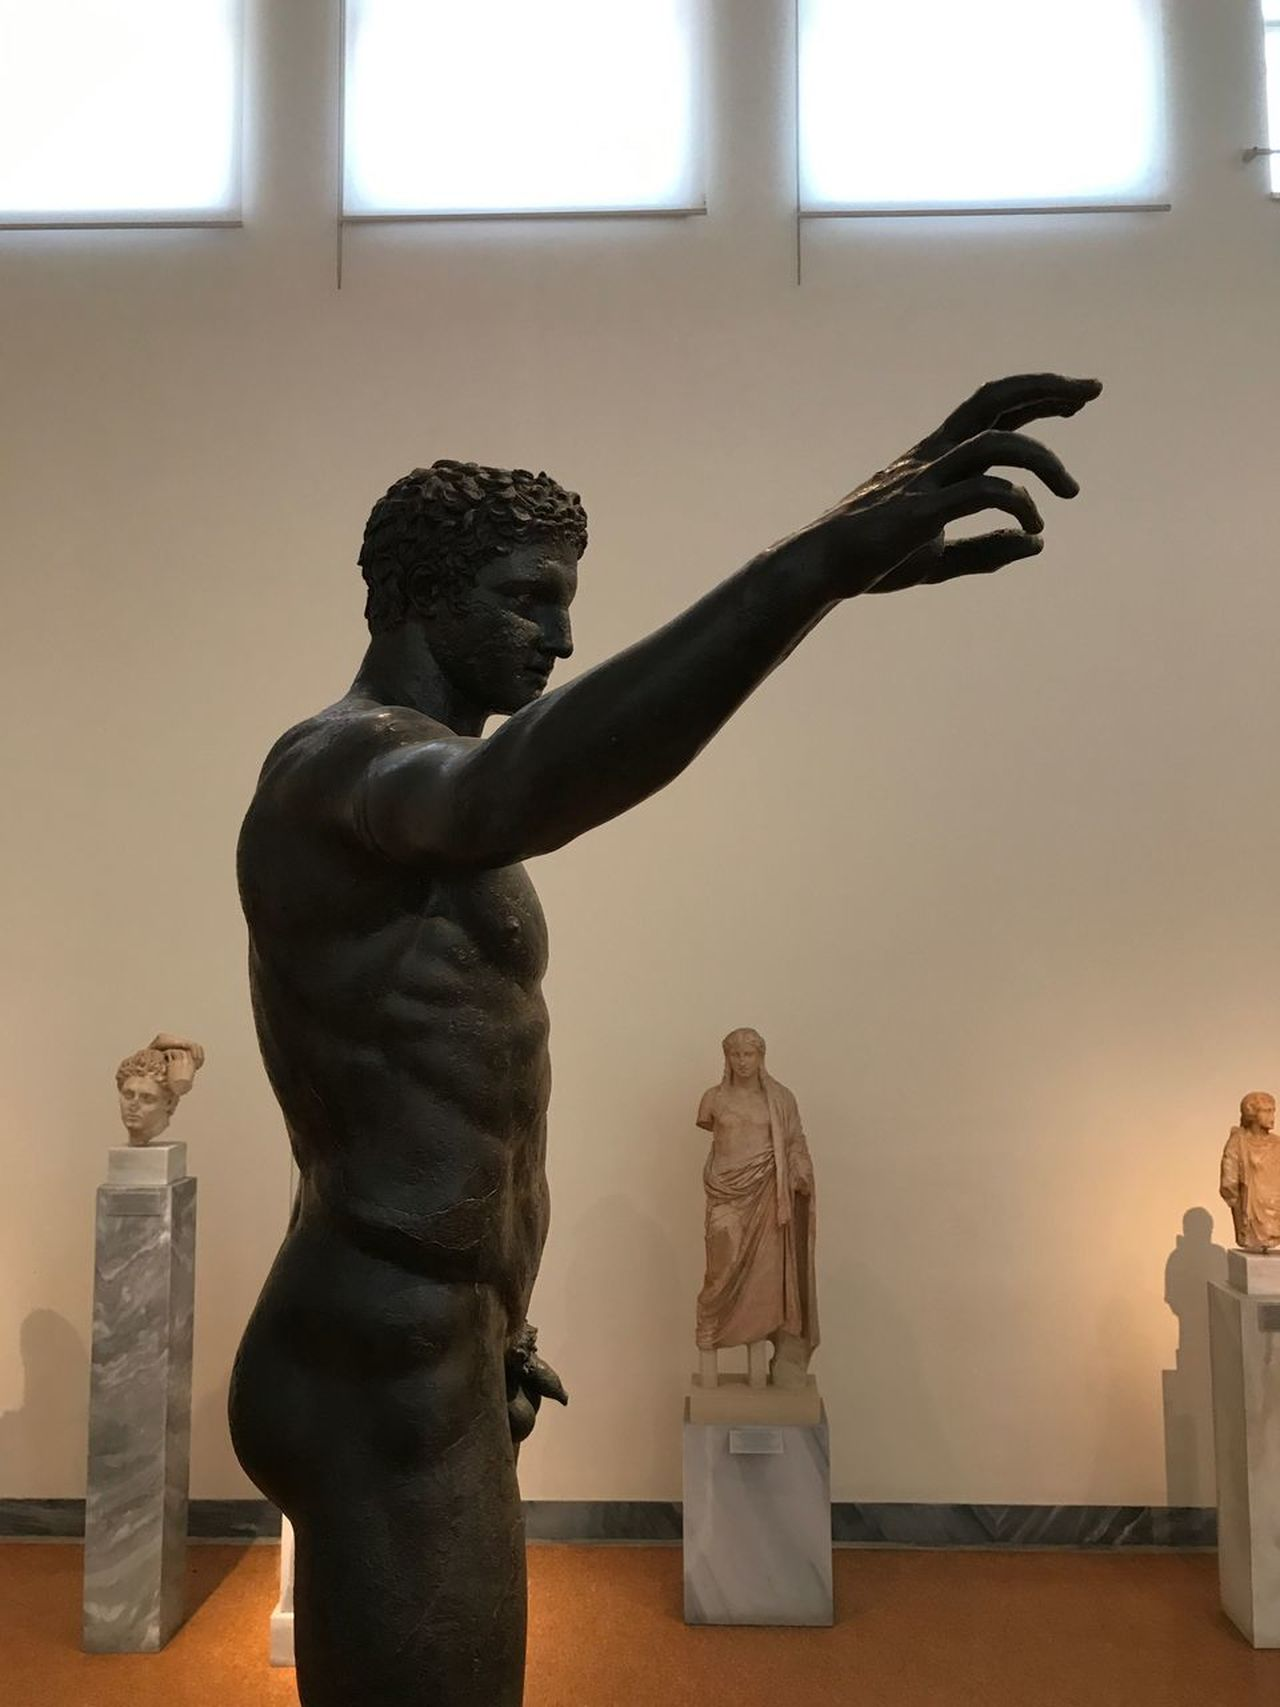 Statue Human Representation Sculpture Male Likeness Art And Craft Female Likeness Indoors  Museum No People Day